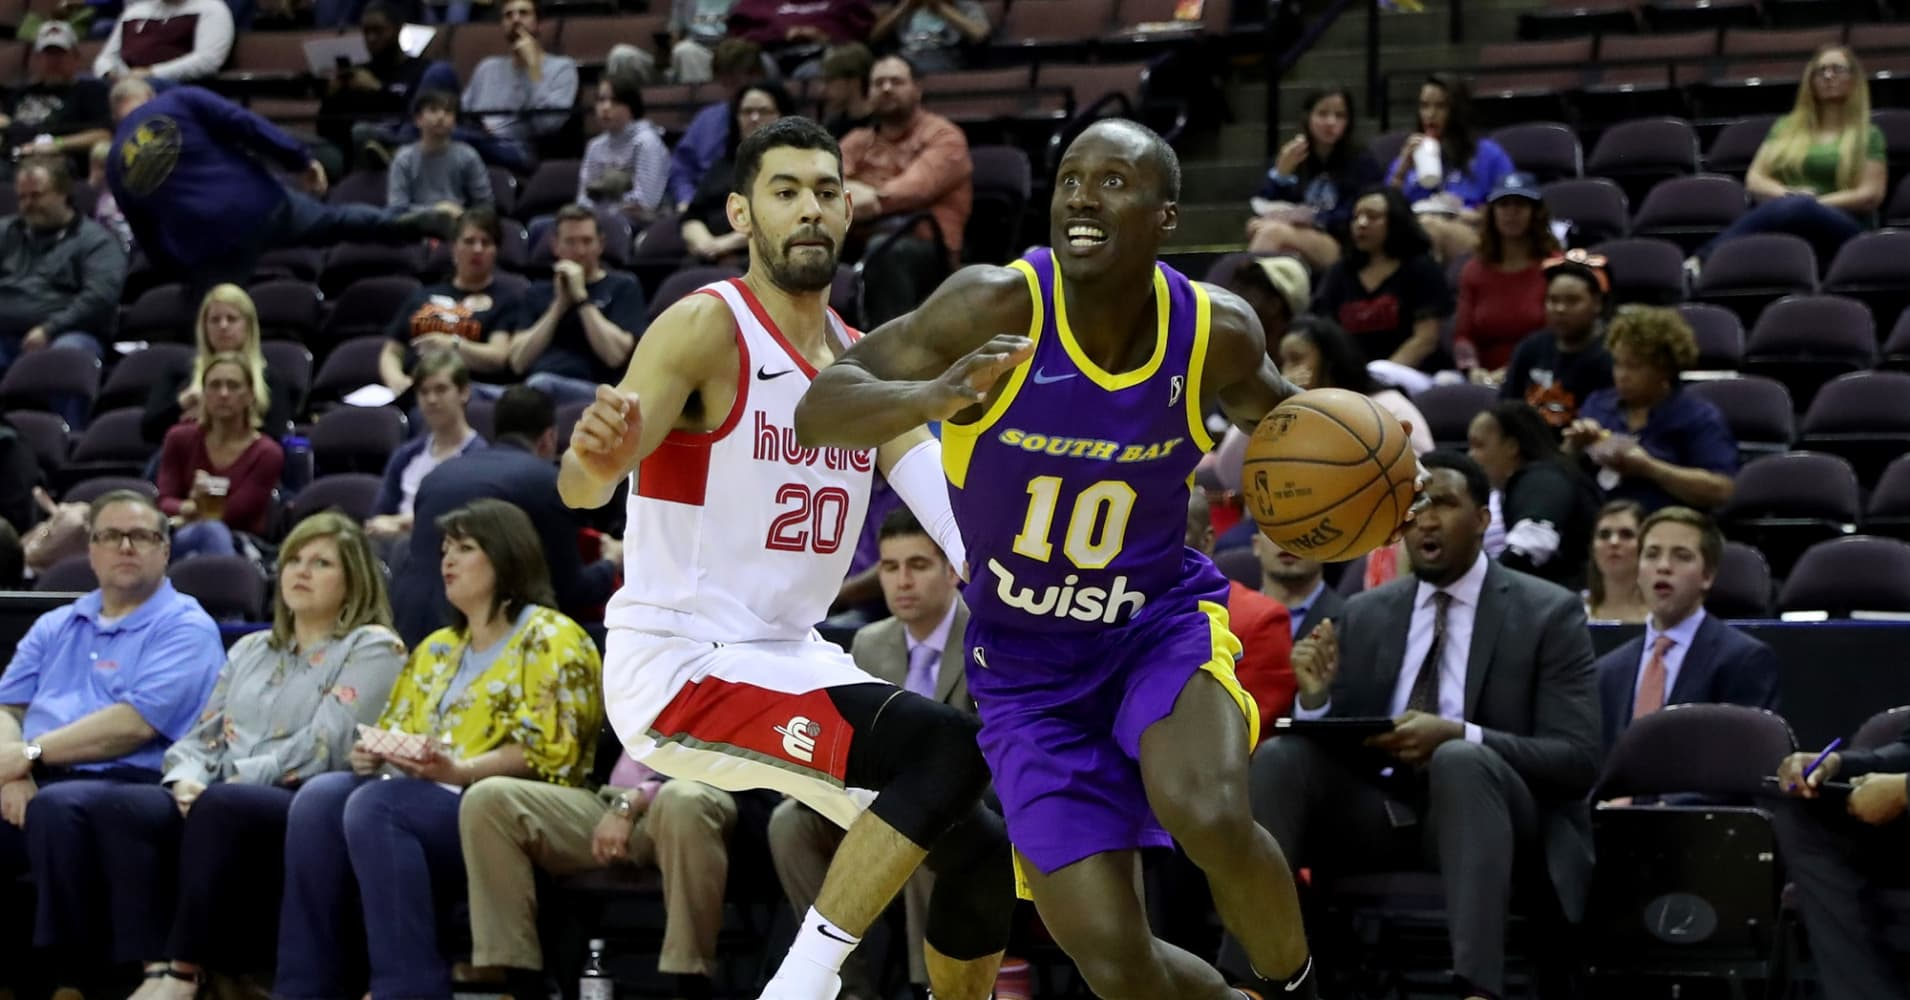 Andre Ingram #10 of the South Bay Lakers passes the ball during the game against the Memphis Hustle during a NBA G-League game on March 23, 2018 at Landers Center in Southaven, Mississippi